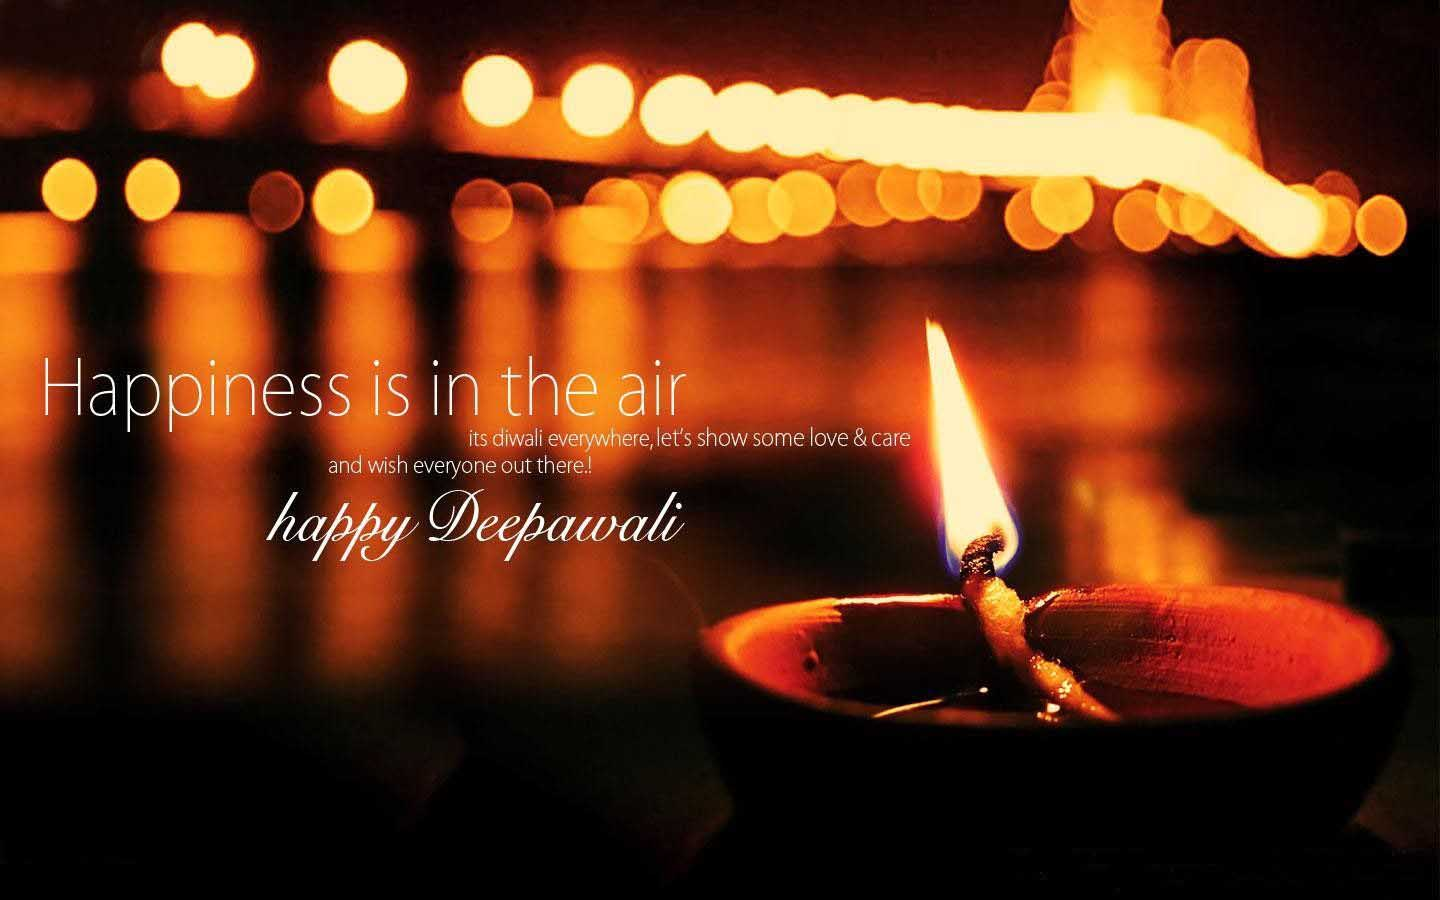 Bombastic happy diwali sms 2018 messages in english 100 bombastic happy diwali sms messages in english 2017 m4hsunfo